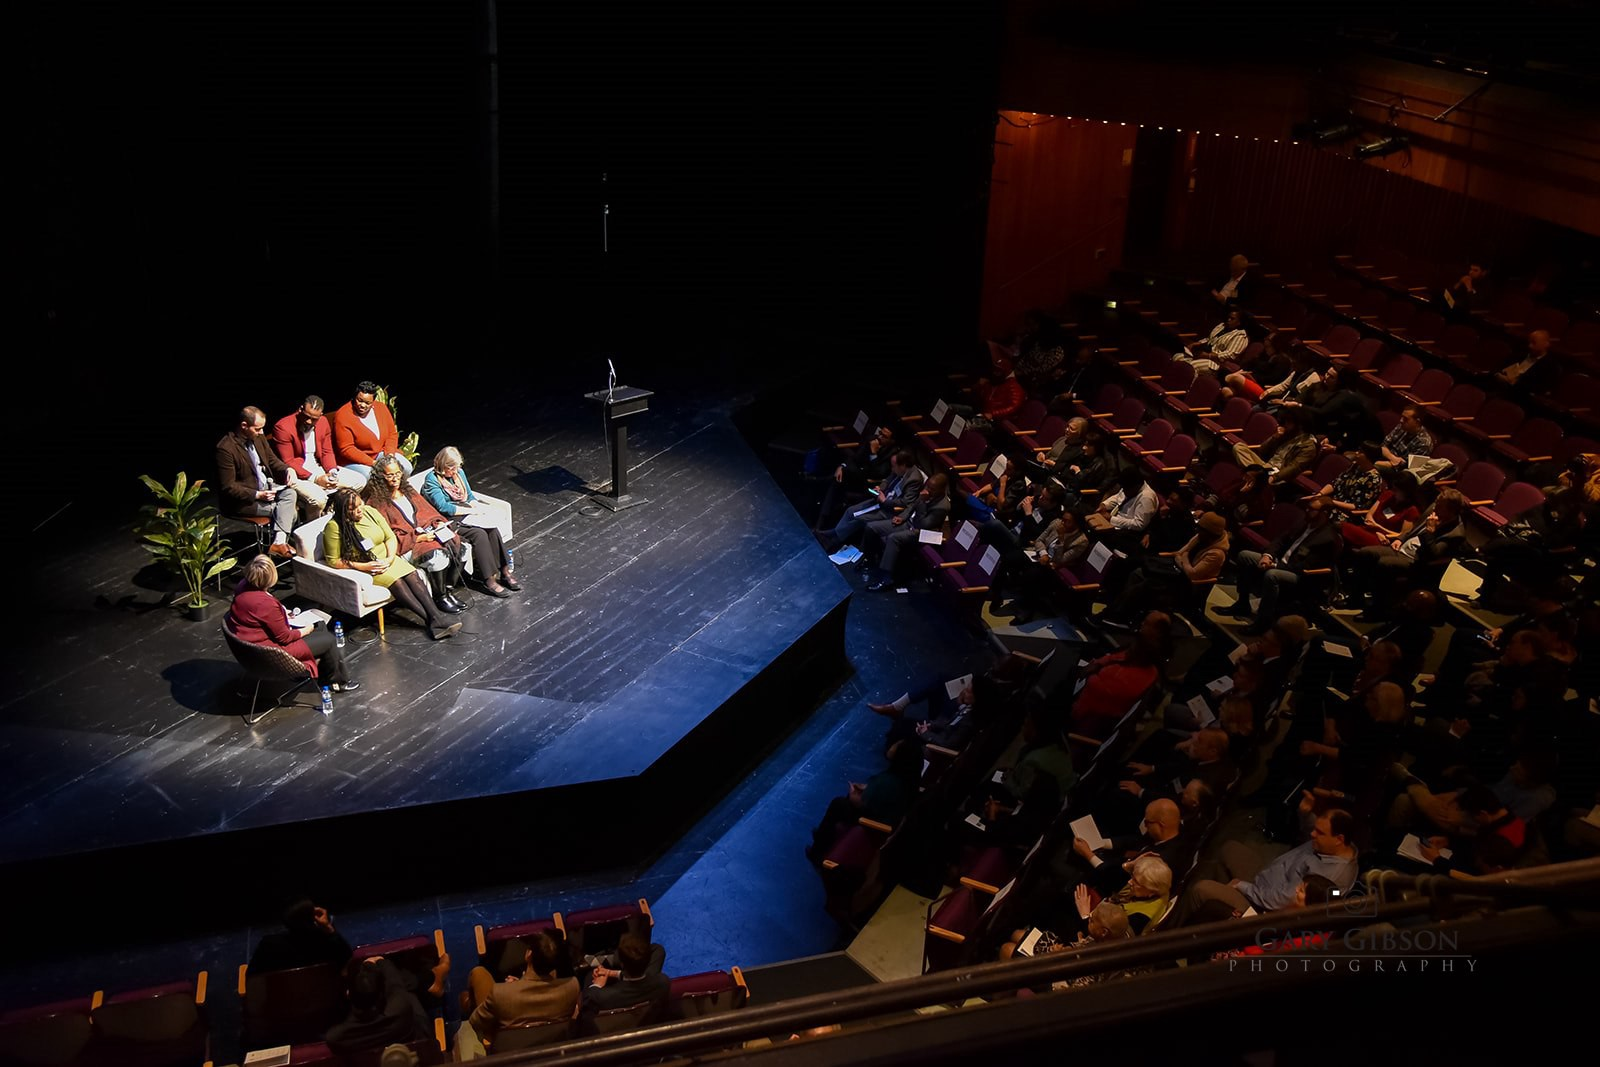 Dr. Stefanie DeLuca interviews panelists for the Thompson 25 event at Baltimore Center Stage.